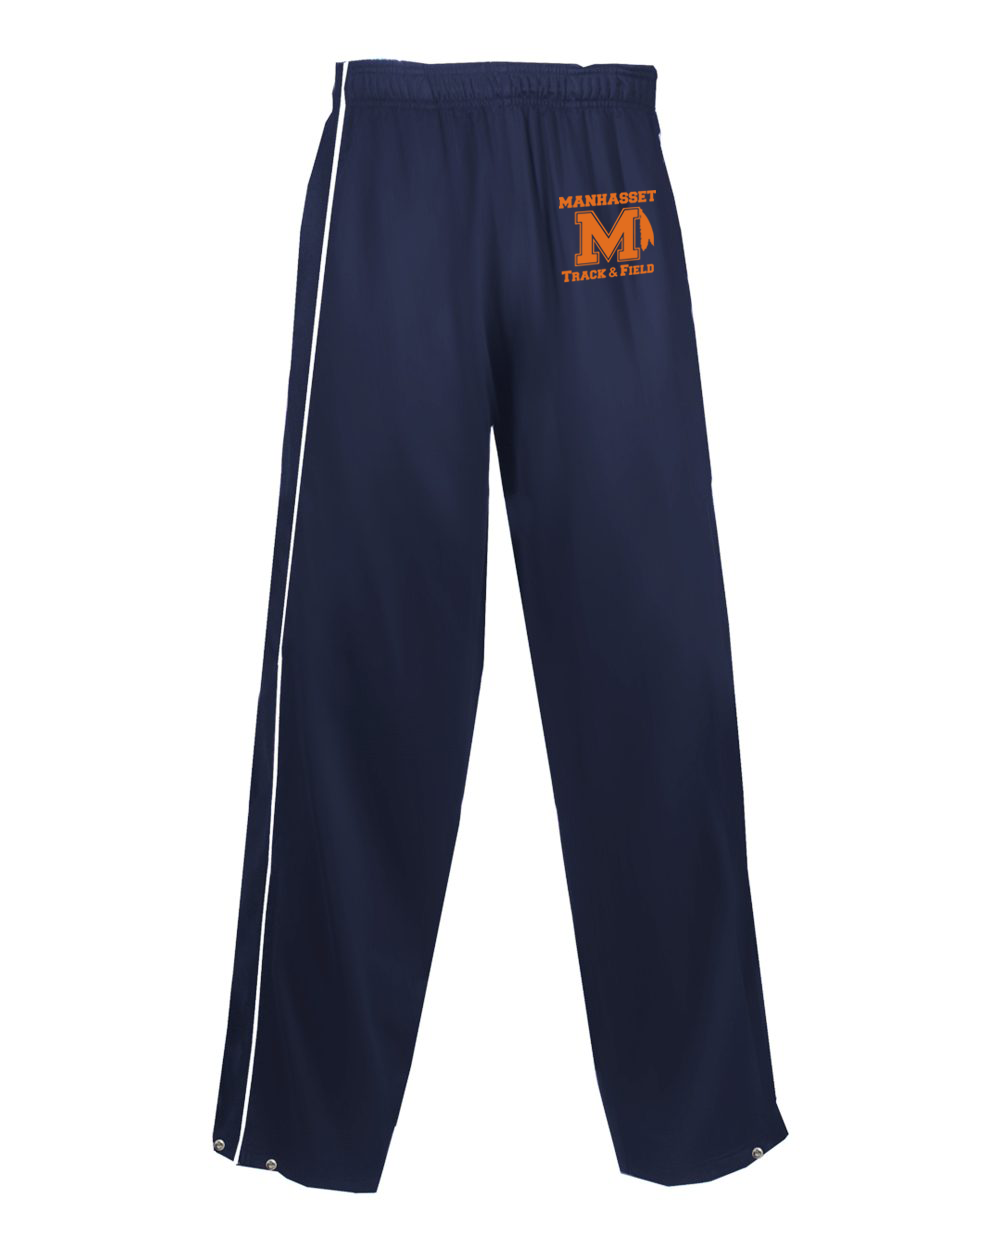 Manhasset Track & Field Youth Pants